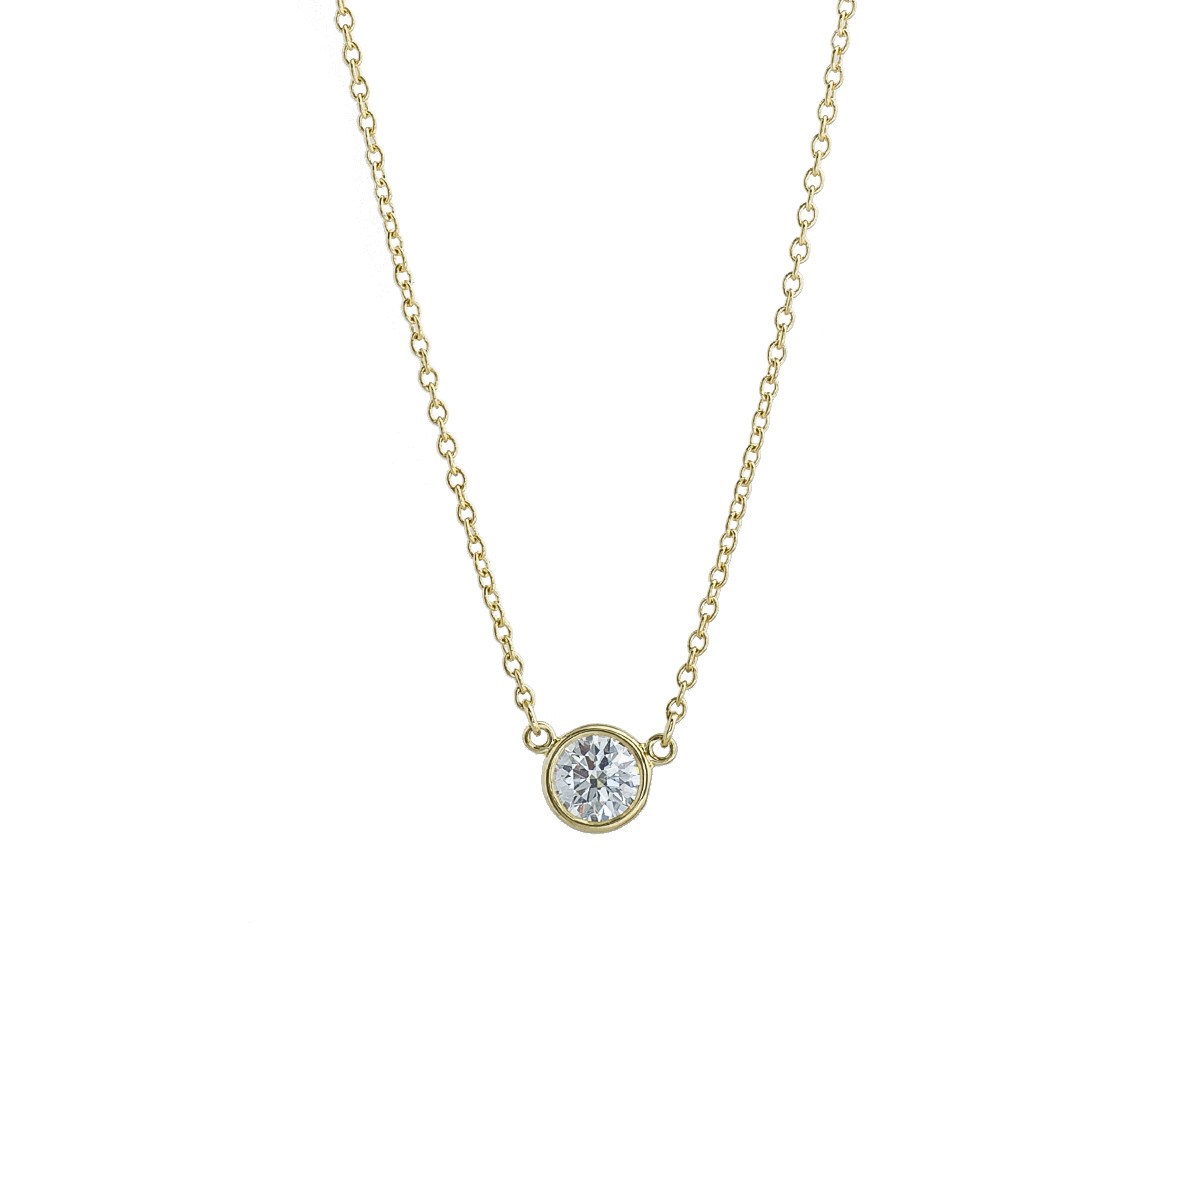 Vintage Tiffany & Co. Elsa Peretti 0.37 CT Diamonds By The Yard Necklace